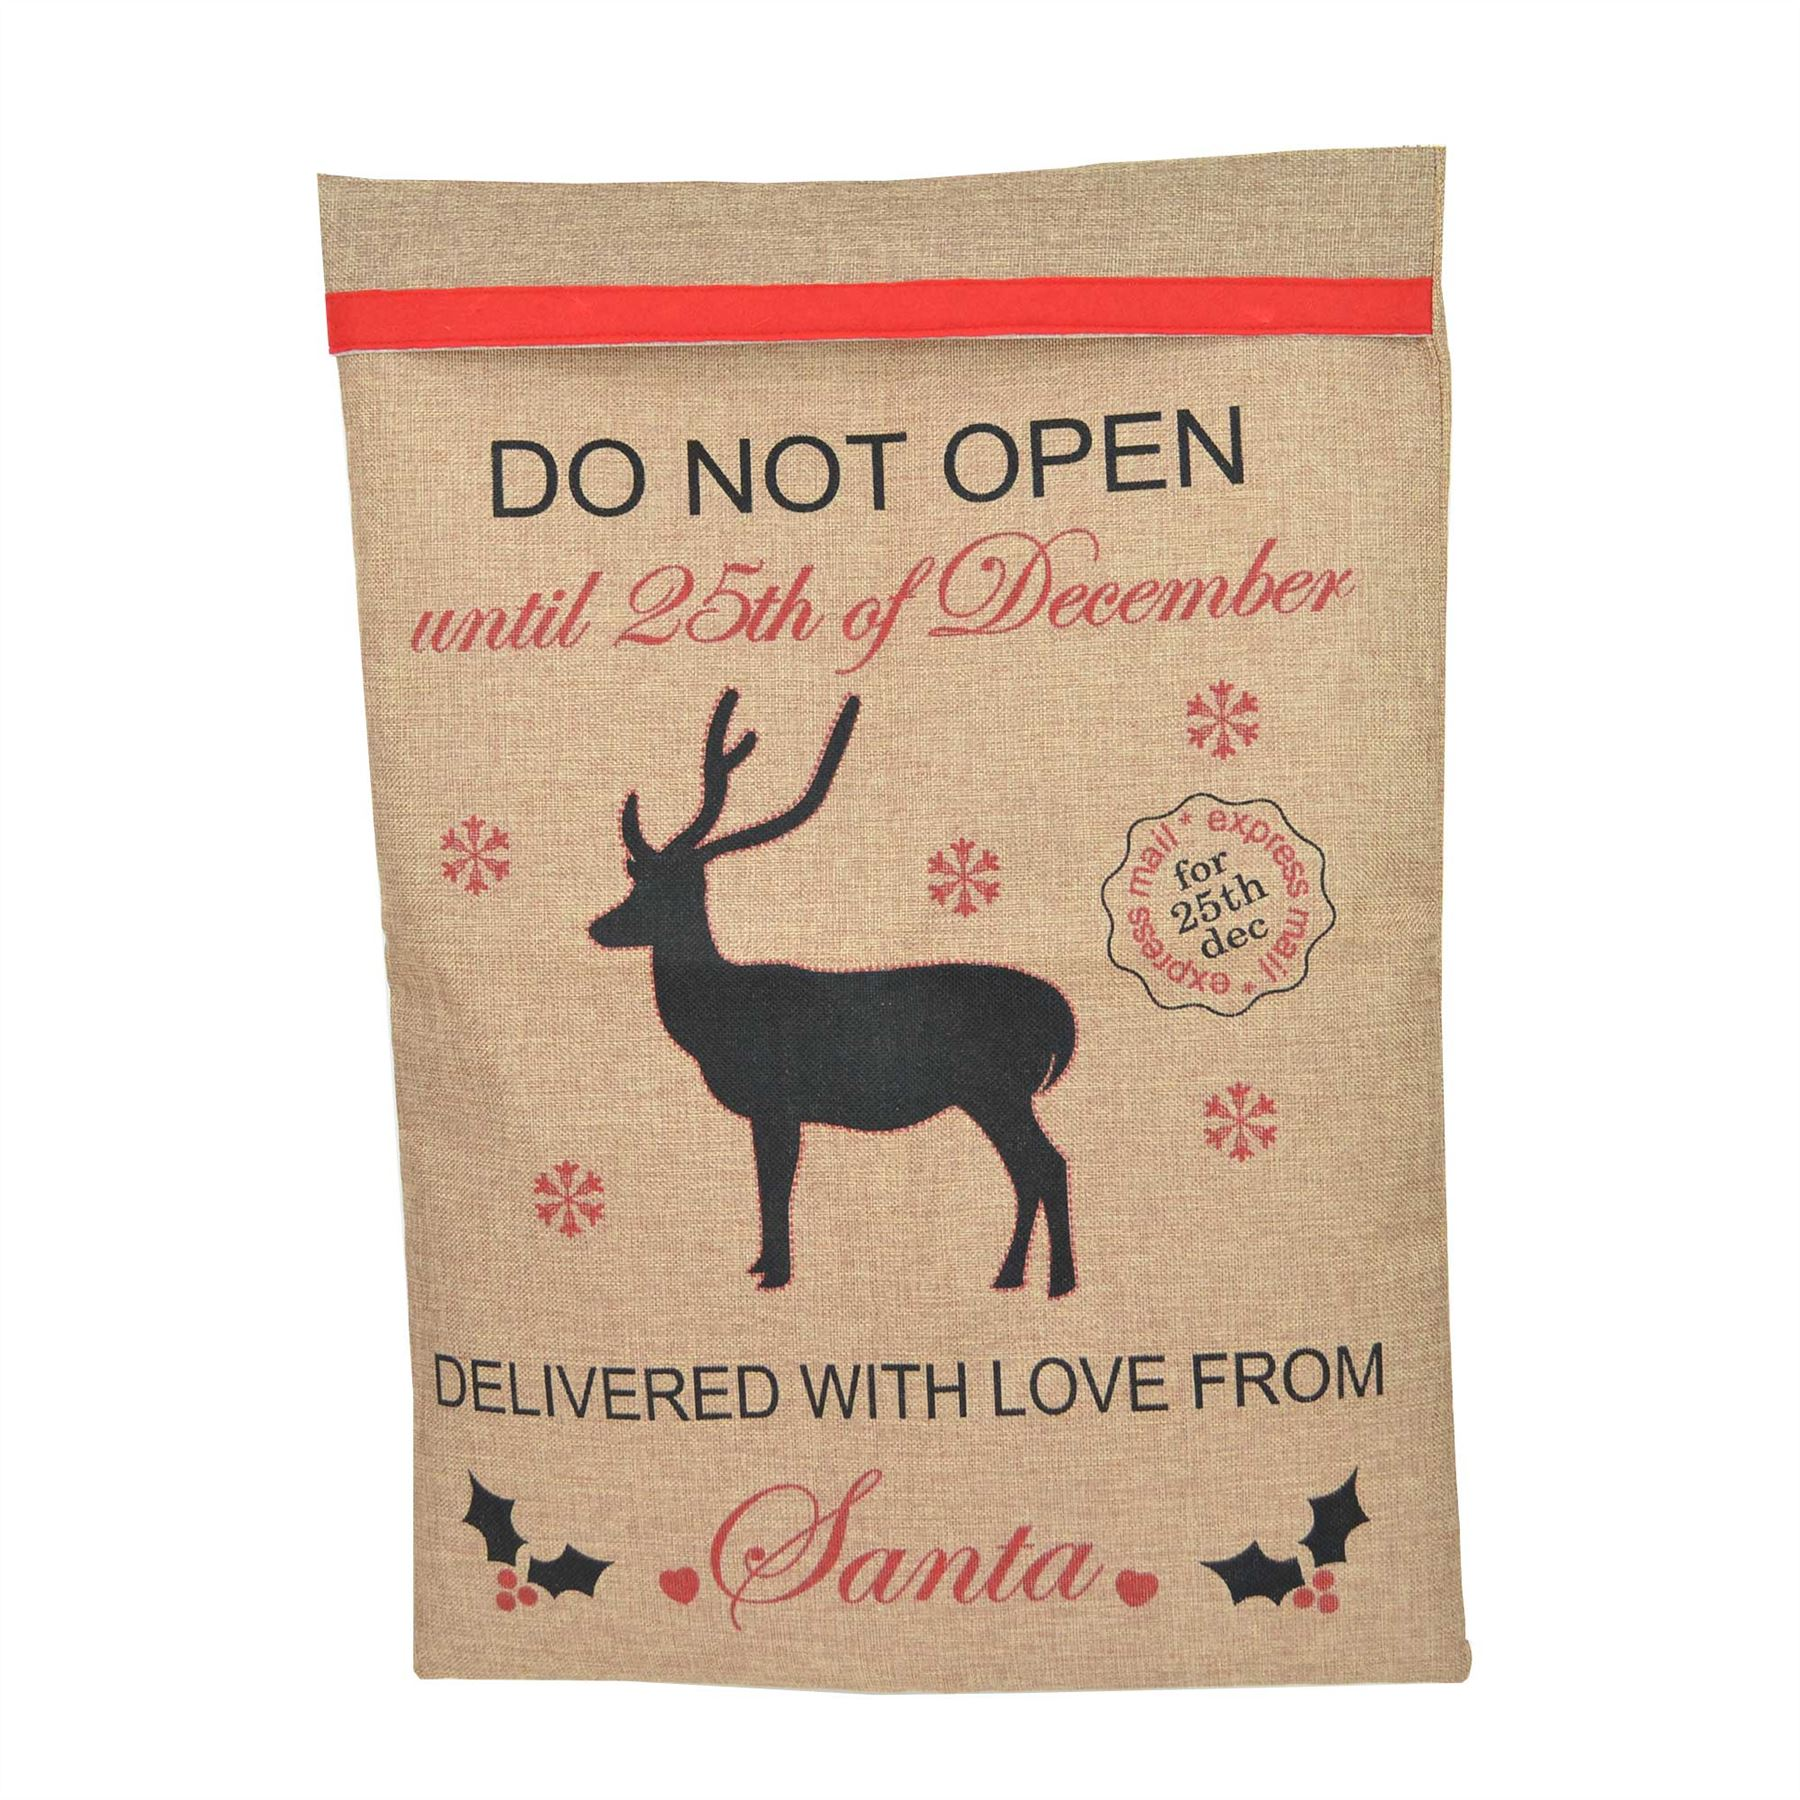 Celebrations Occasions Red Felt Hessian Christmas Santa Sack Xmas Stocking Gifts Bags Decorations Home Furniture Diy Pneumec In